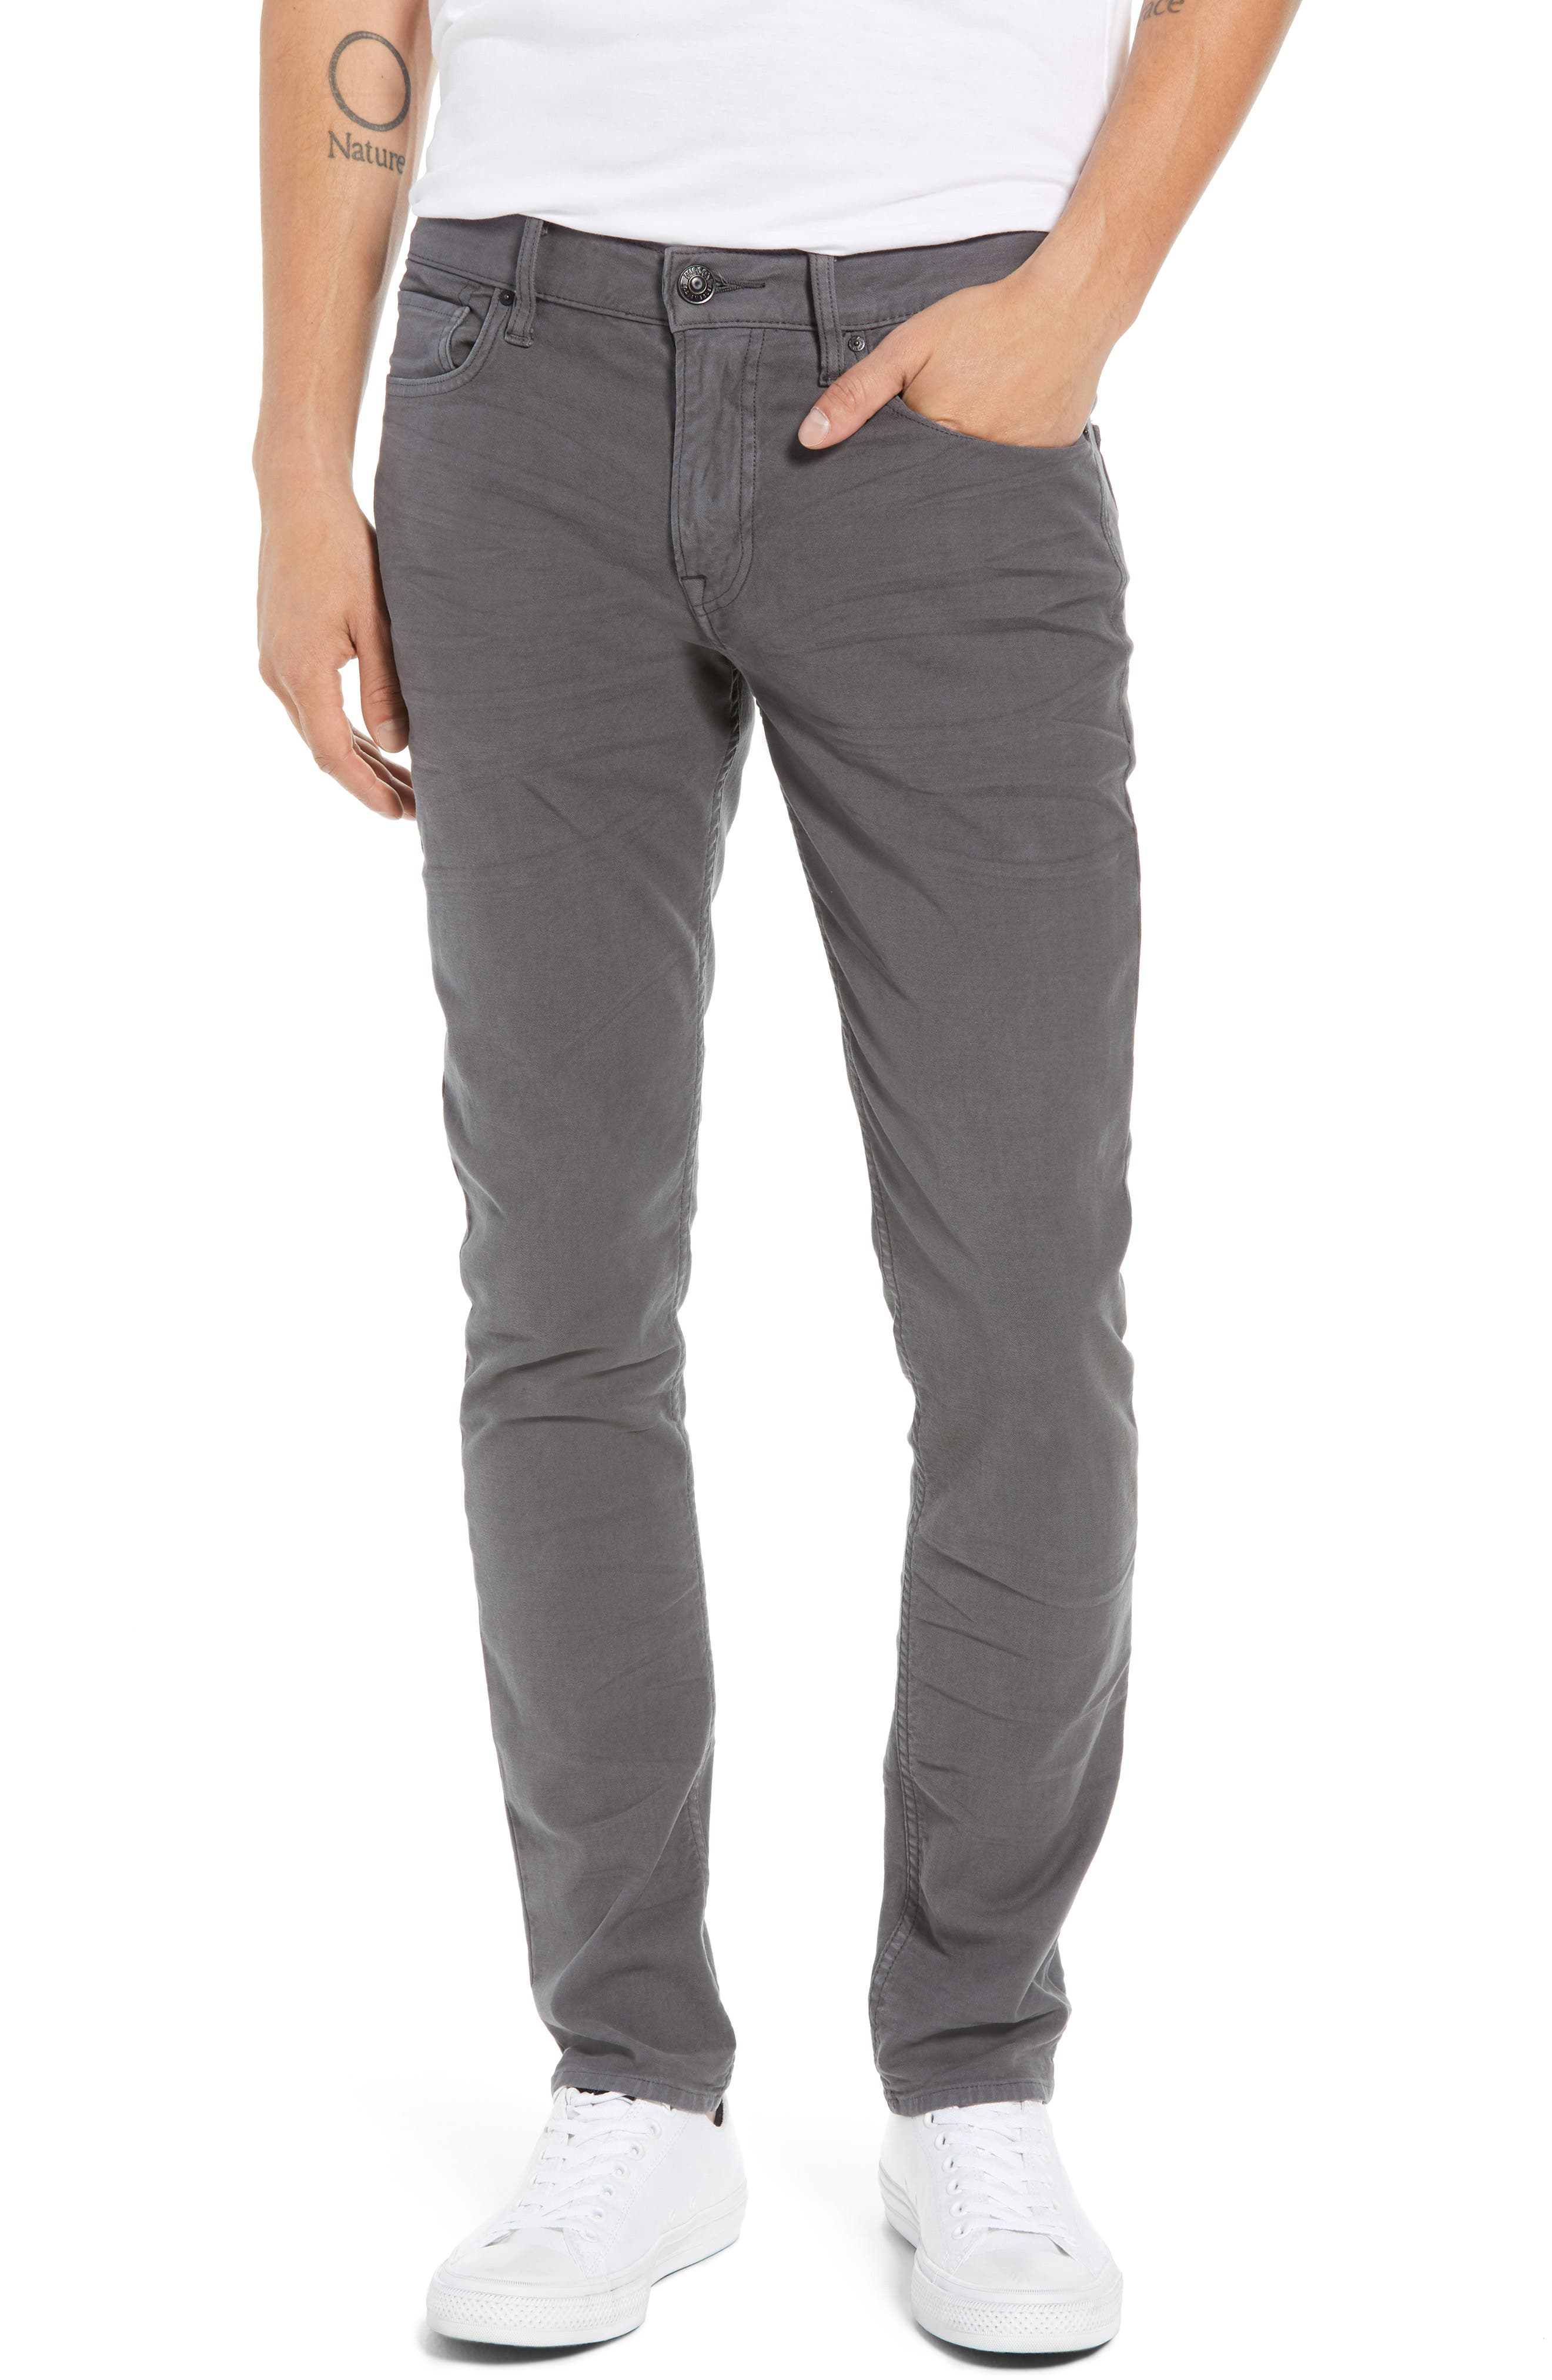 Hudson Axl Skinny Fit Jeans,                         Main,                         color, GRAPHITE